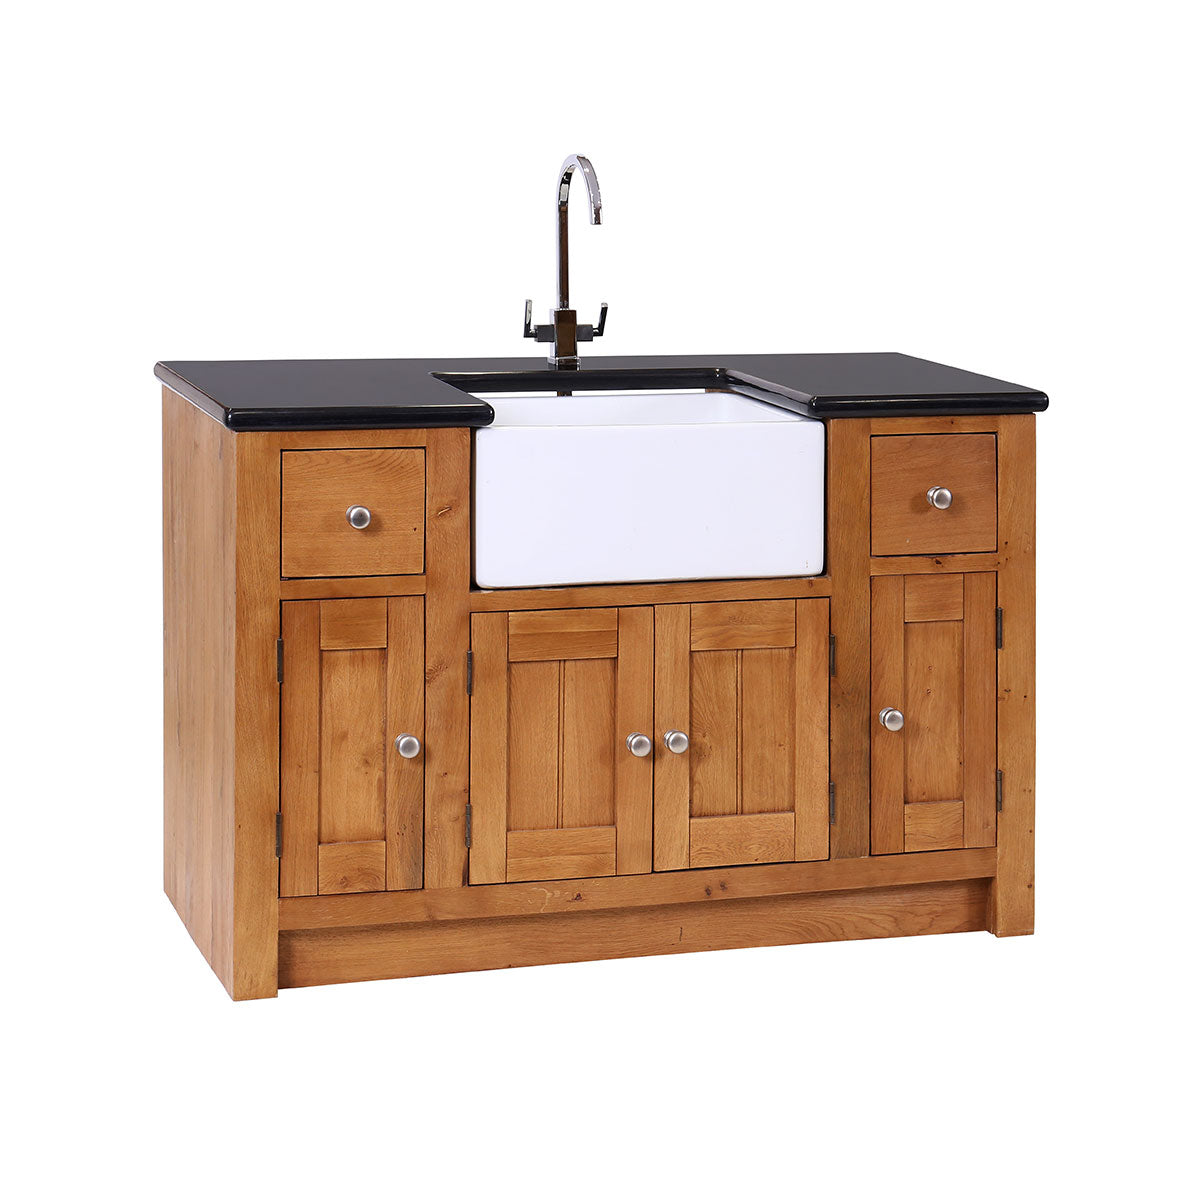 Granite Sink Unit with 4 Doors & 2 Drawers ( FLUSH EDGE )